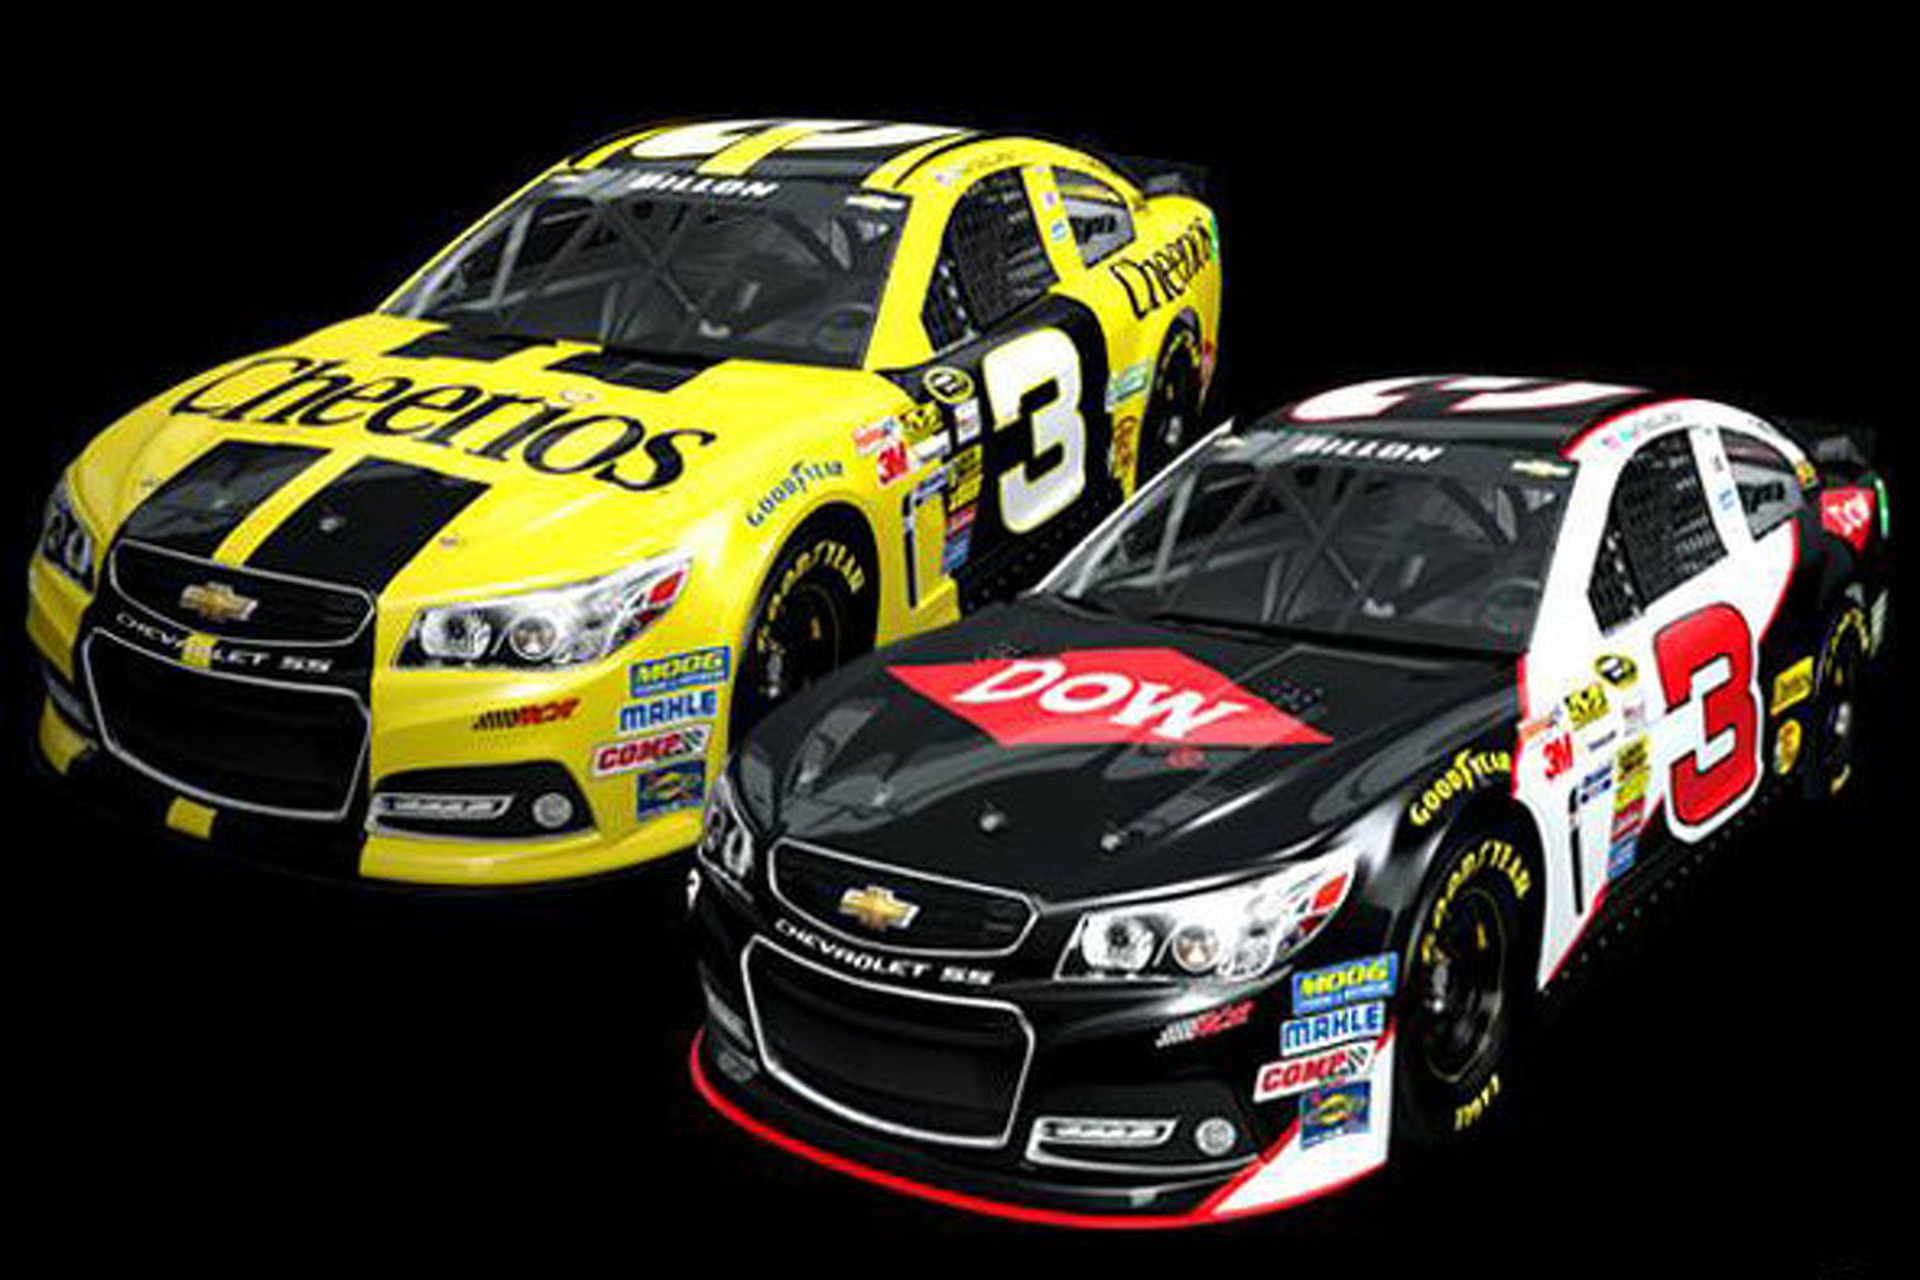 Dale Earnhardt's No. 3 Returning to NASCAR, to Be Driven By Rookie